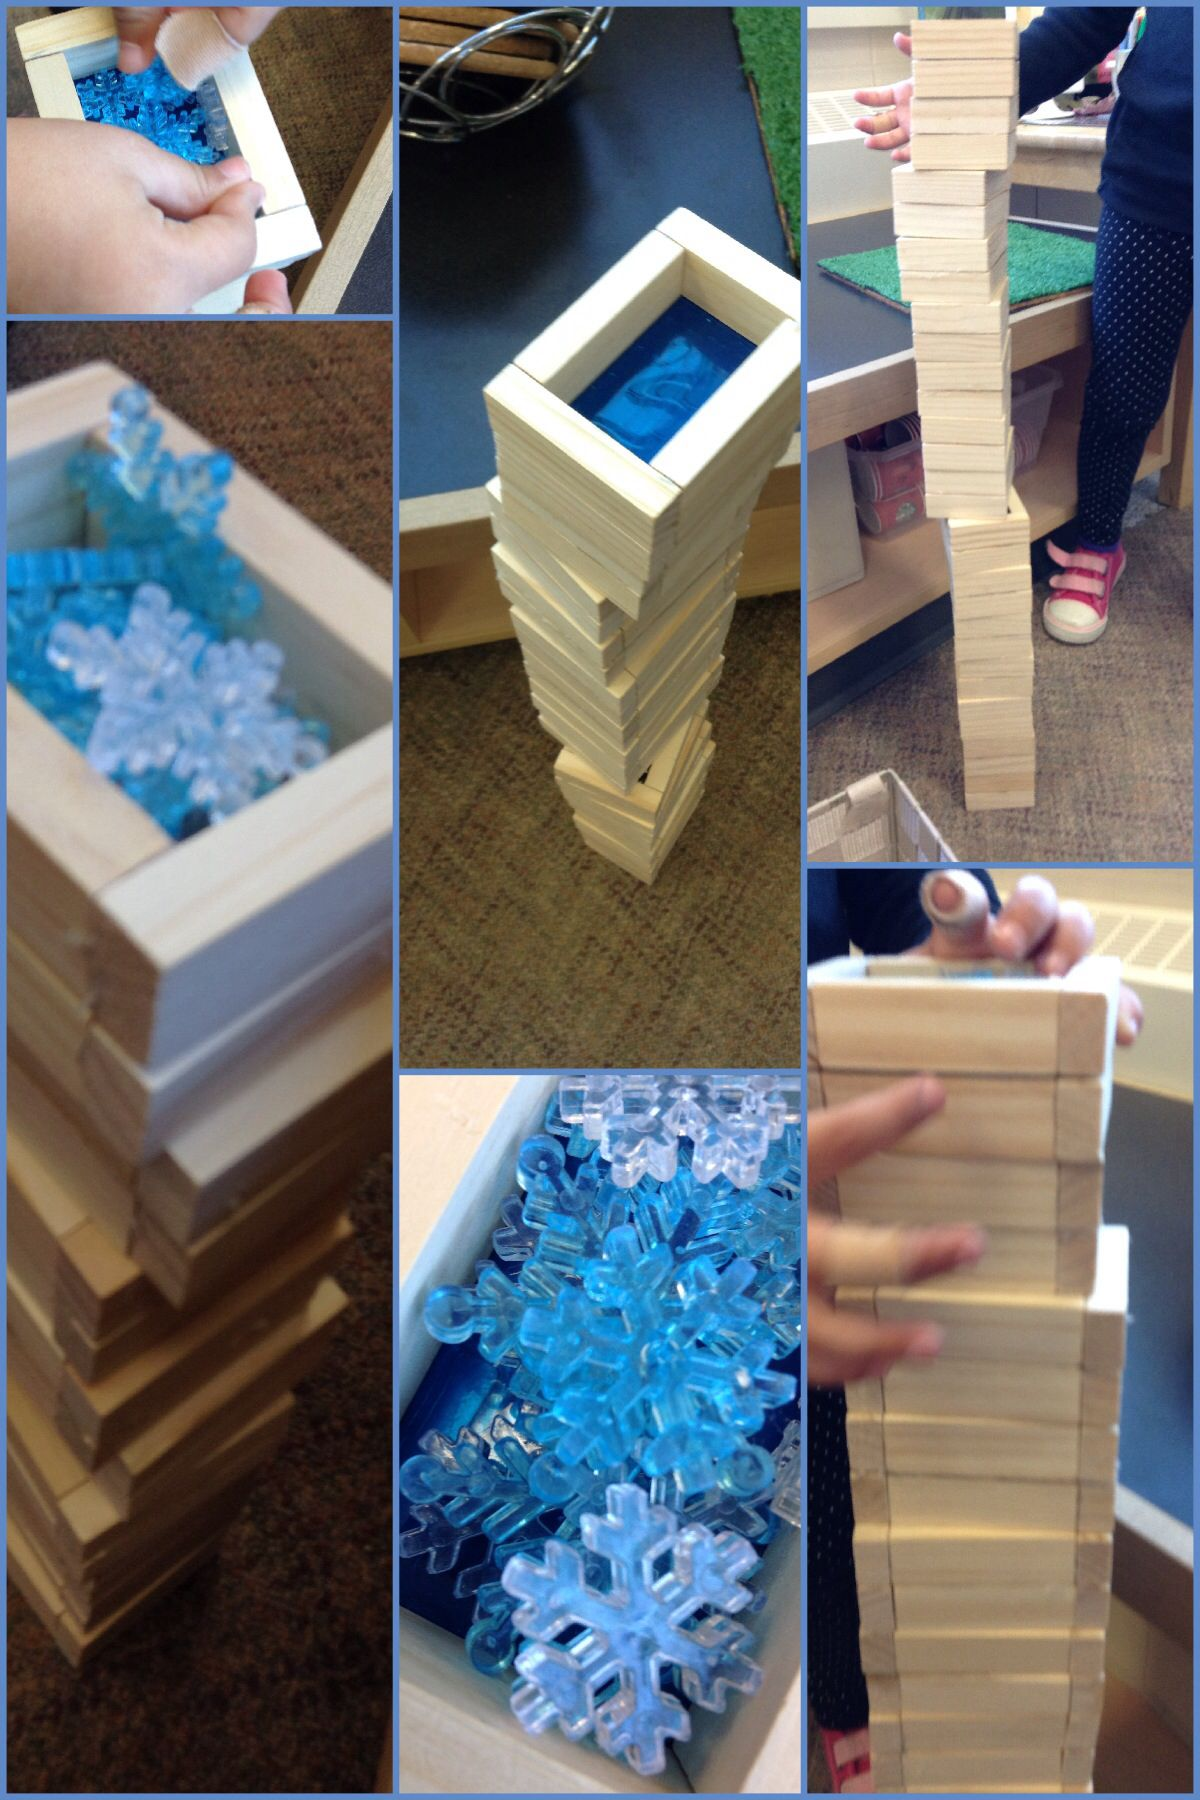 Via @ChapmanKs messing about with balance & DIY window blocks to create a hotel & rooftop pool (with snow).